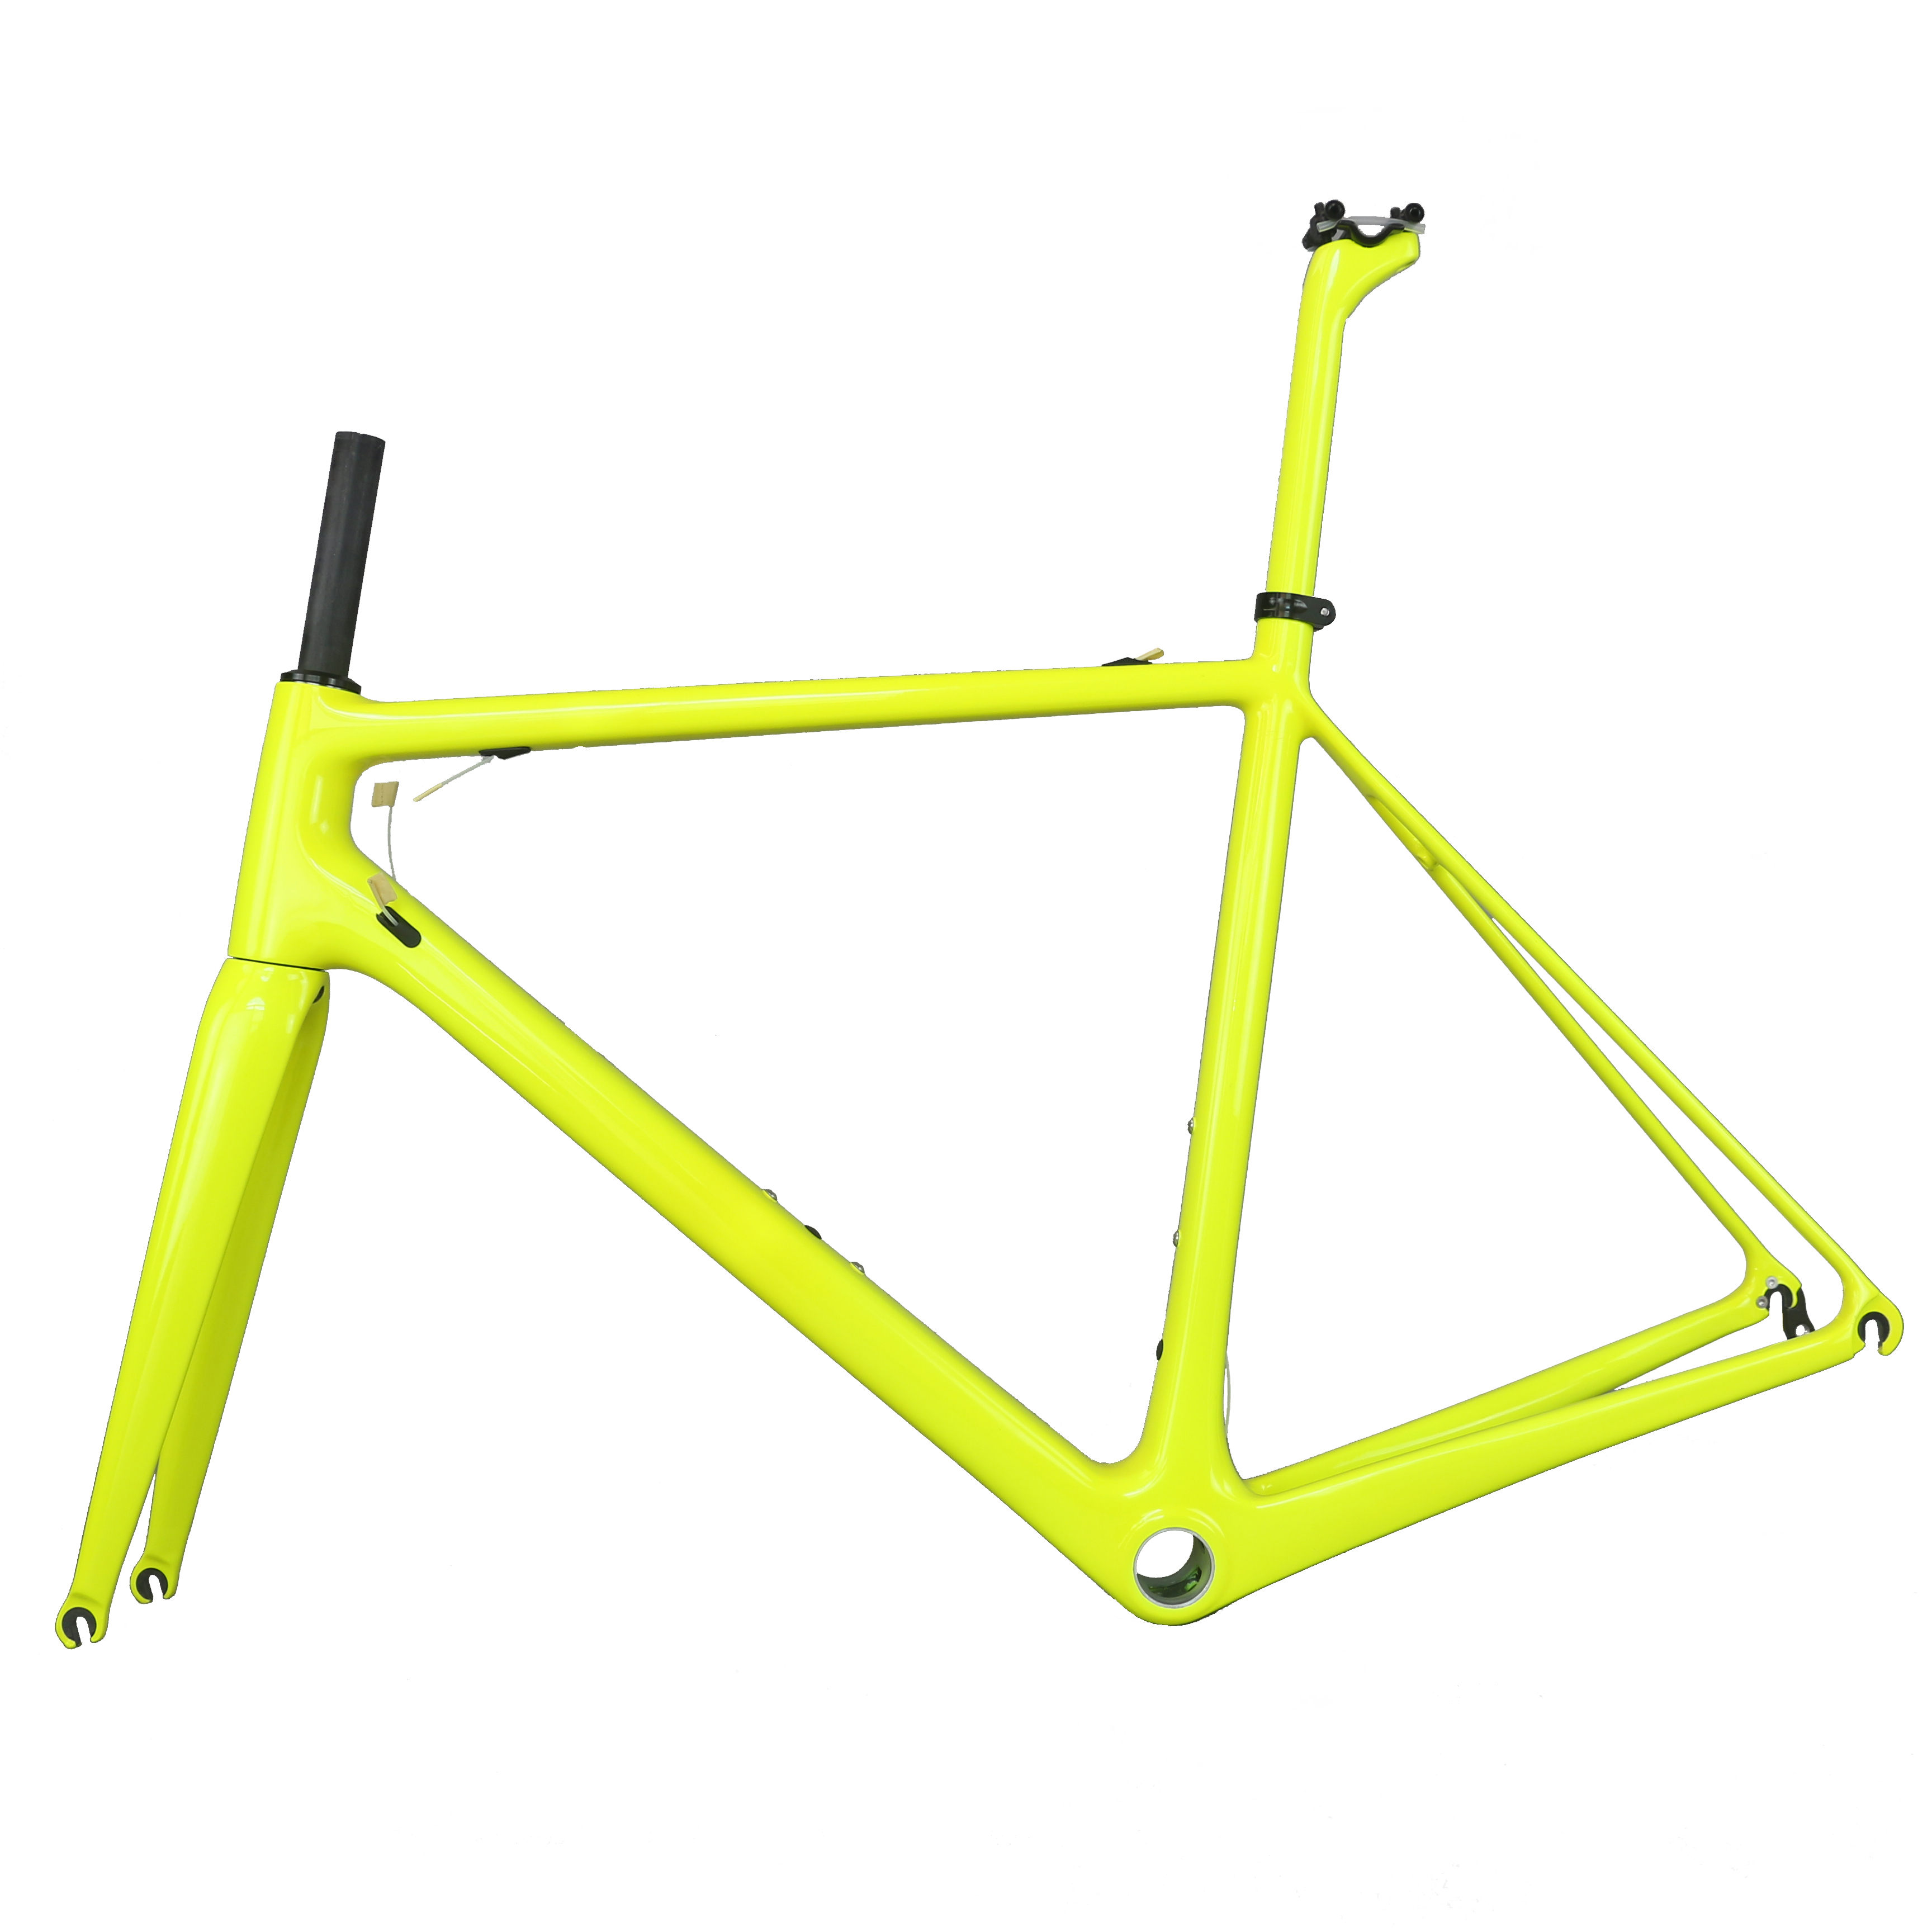 2019 New BSA Fluorescent Yellow Paint Frame BB30 T1000 Carbon Fiber With 27.2 Seat Post Carbon Road Frame FM066